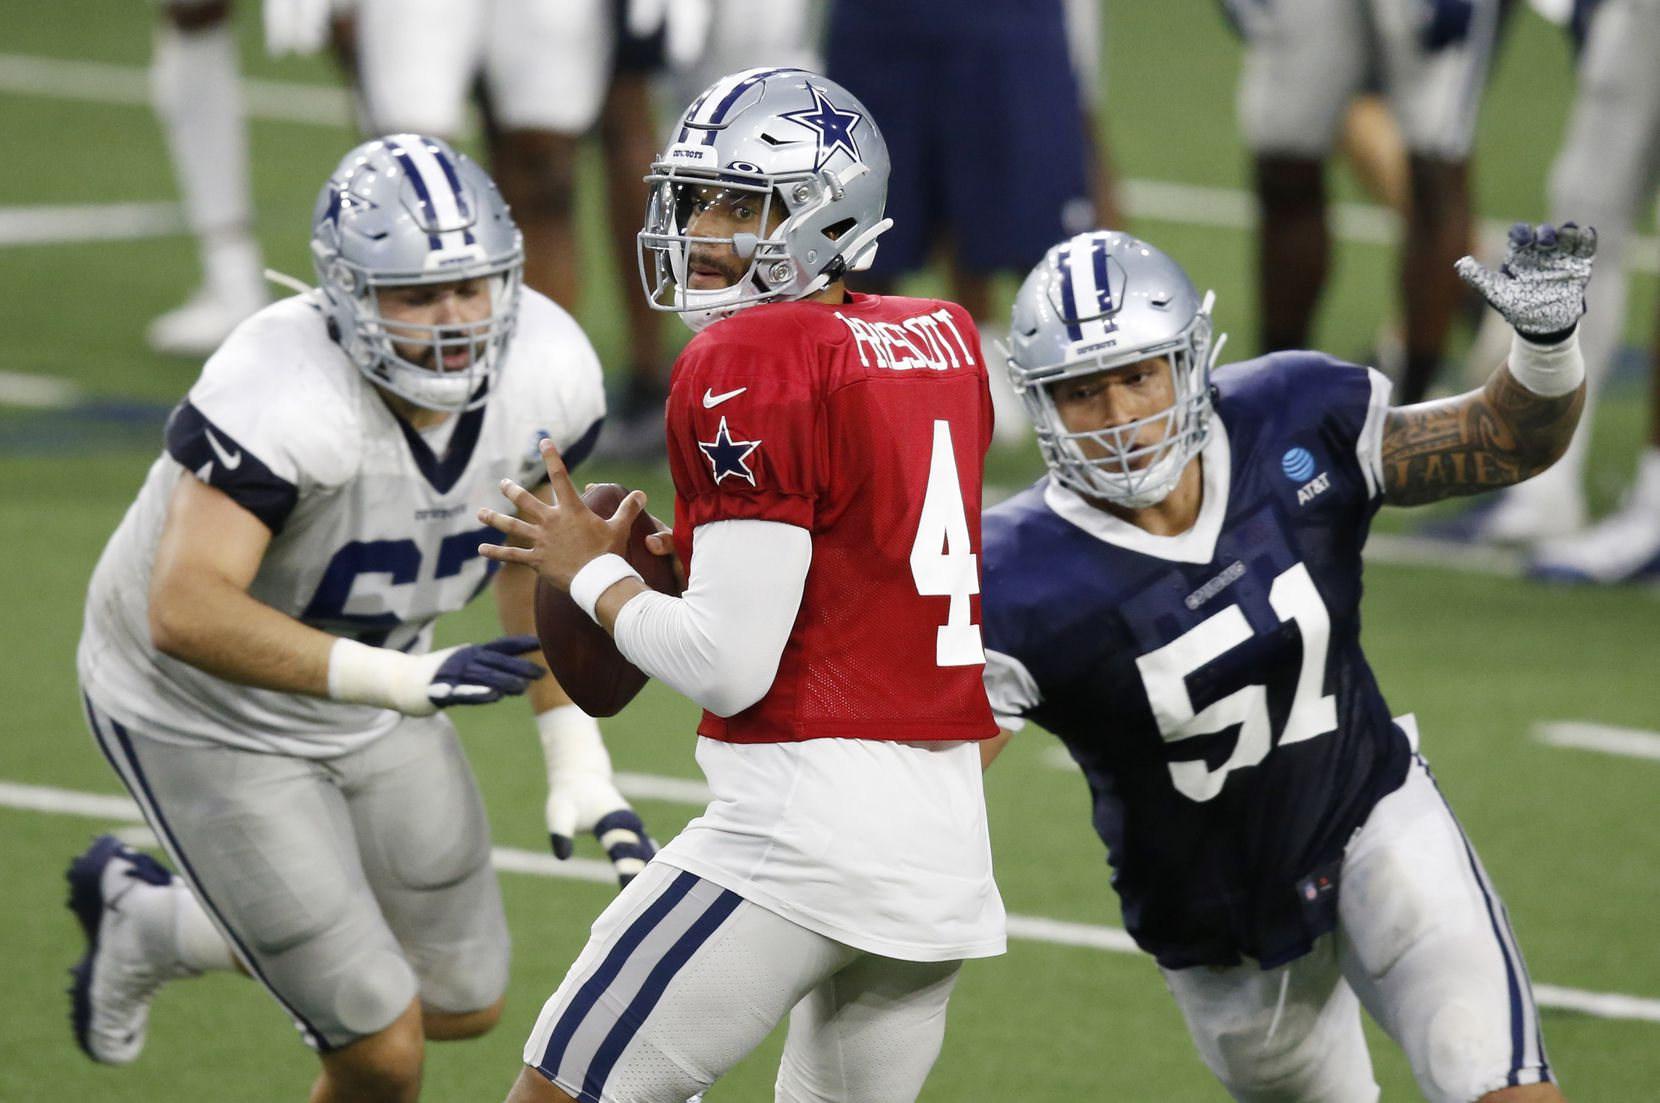 Dallas Cowboys quarterback Dak Prescott (4) looks to pass as Dallas Cowboys defensive end Bradlee Anae (51) closes in on him during training camp at the Dallas Cowboys headquarters at The Star in Frisco, Texas on Thursday, August 27, 2020. (Vernon Bryant/The Dallas Morning News)